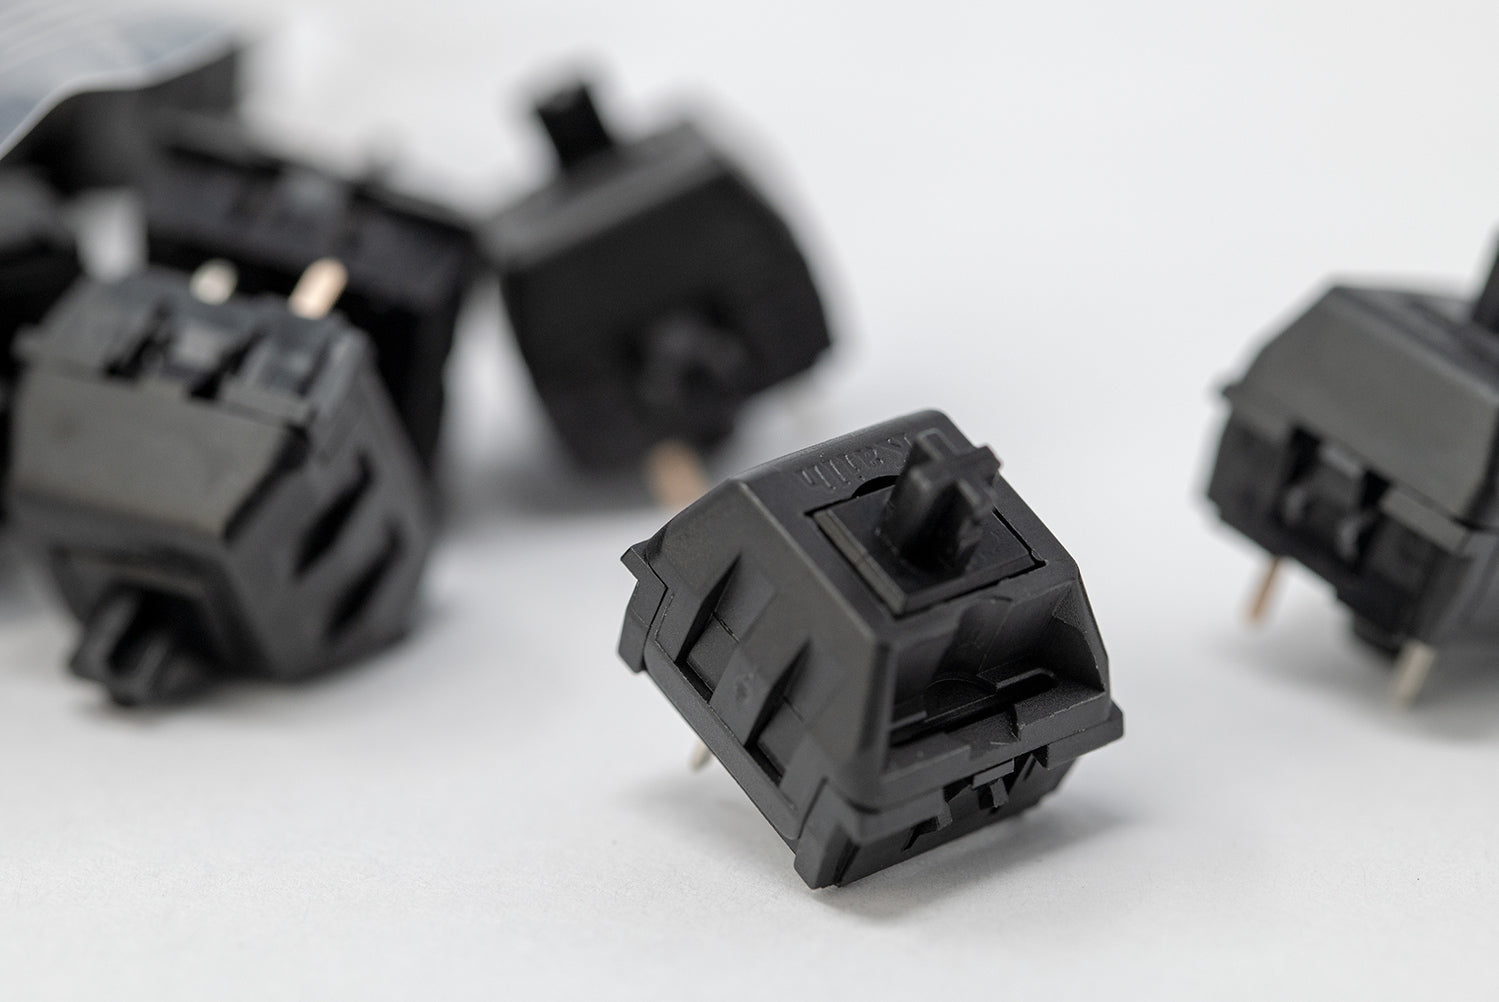 Kailh Black Mechanical Switches (36 Count)